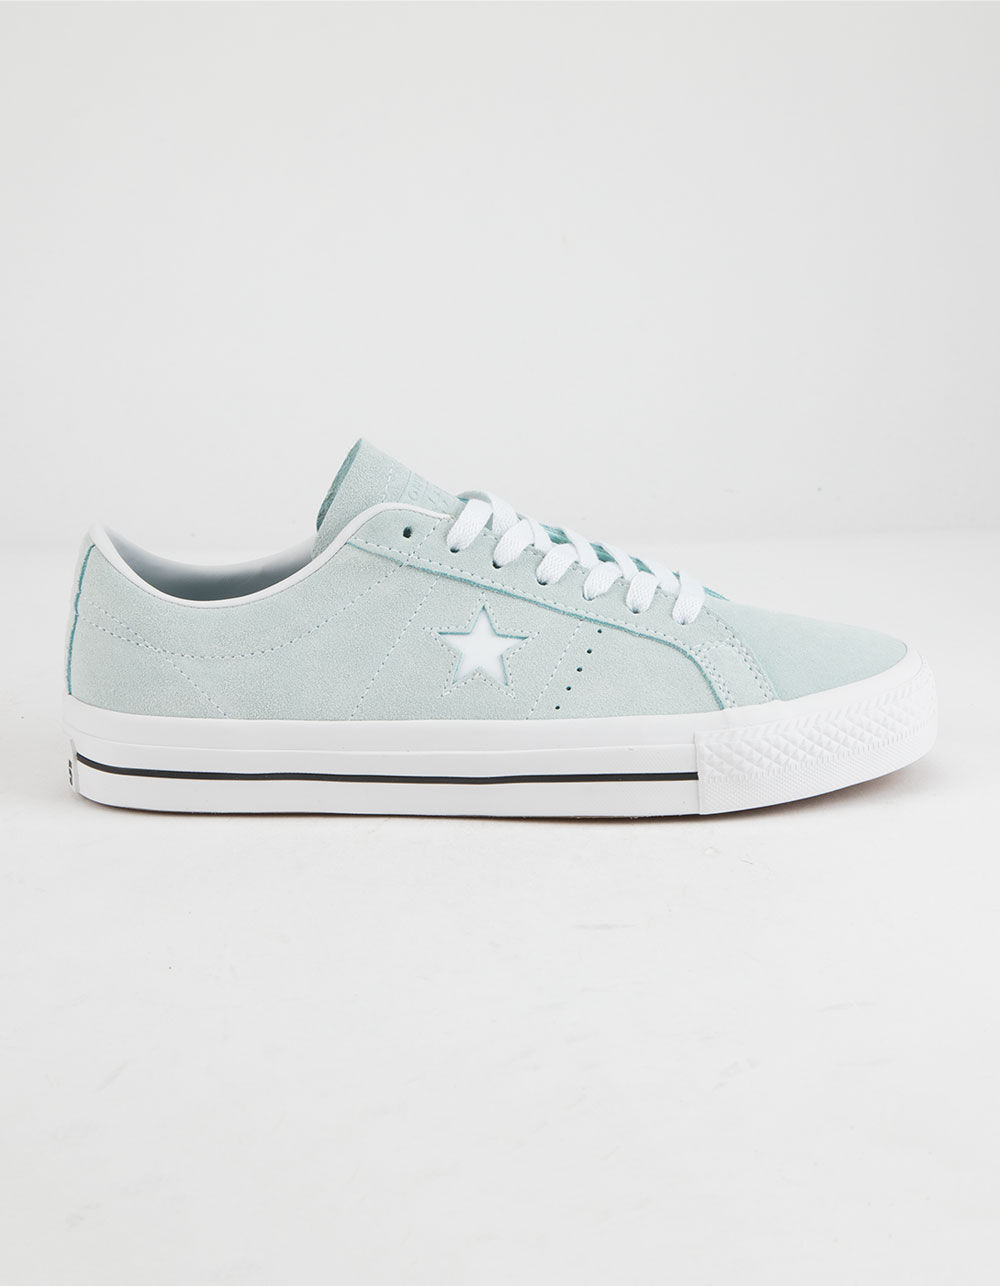 CONVERSE One Star Pro OX Teal Tint Shoes